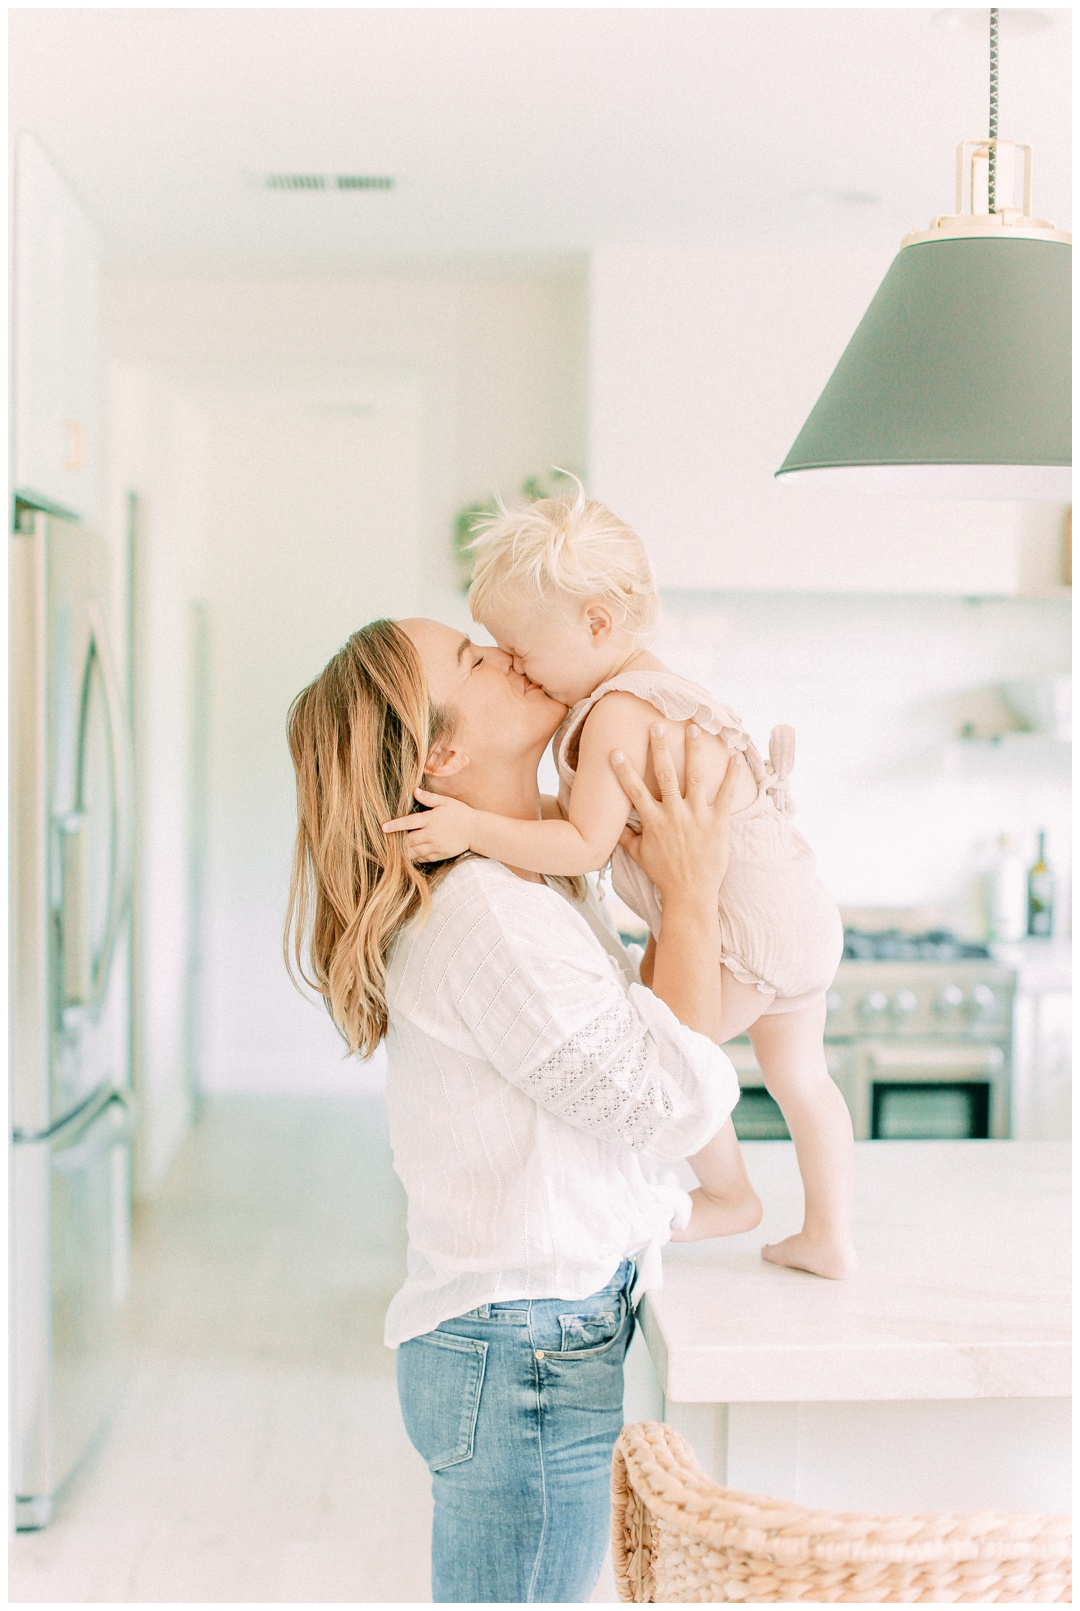 Kristin_Dinsmore_Family_Newport_Beach_Family_Photographer_in_home_lifestyle_session_Cori_kleckner_photography_Orange_county_in_home_Family_photos_Newport_Beach_Family_photos__1755.jpg